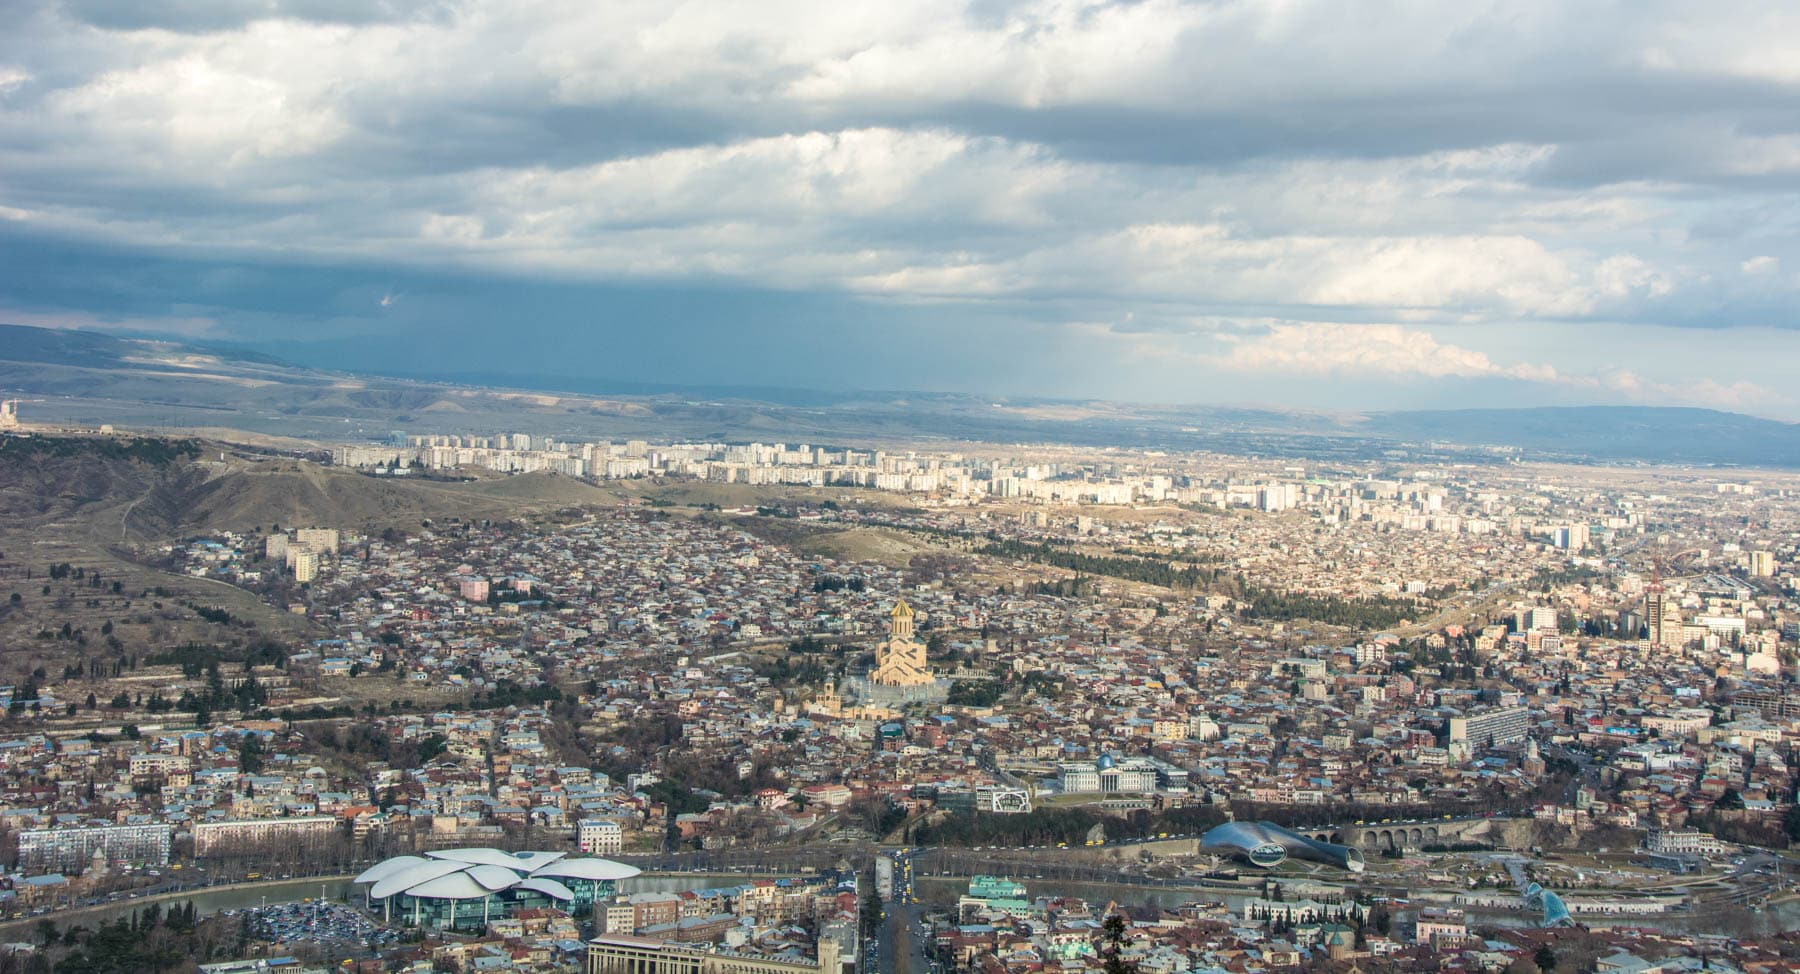 Tbilisi, Georgia from above